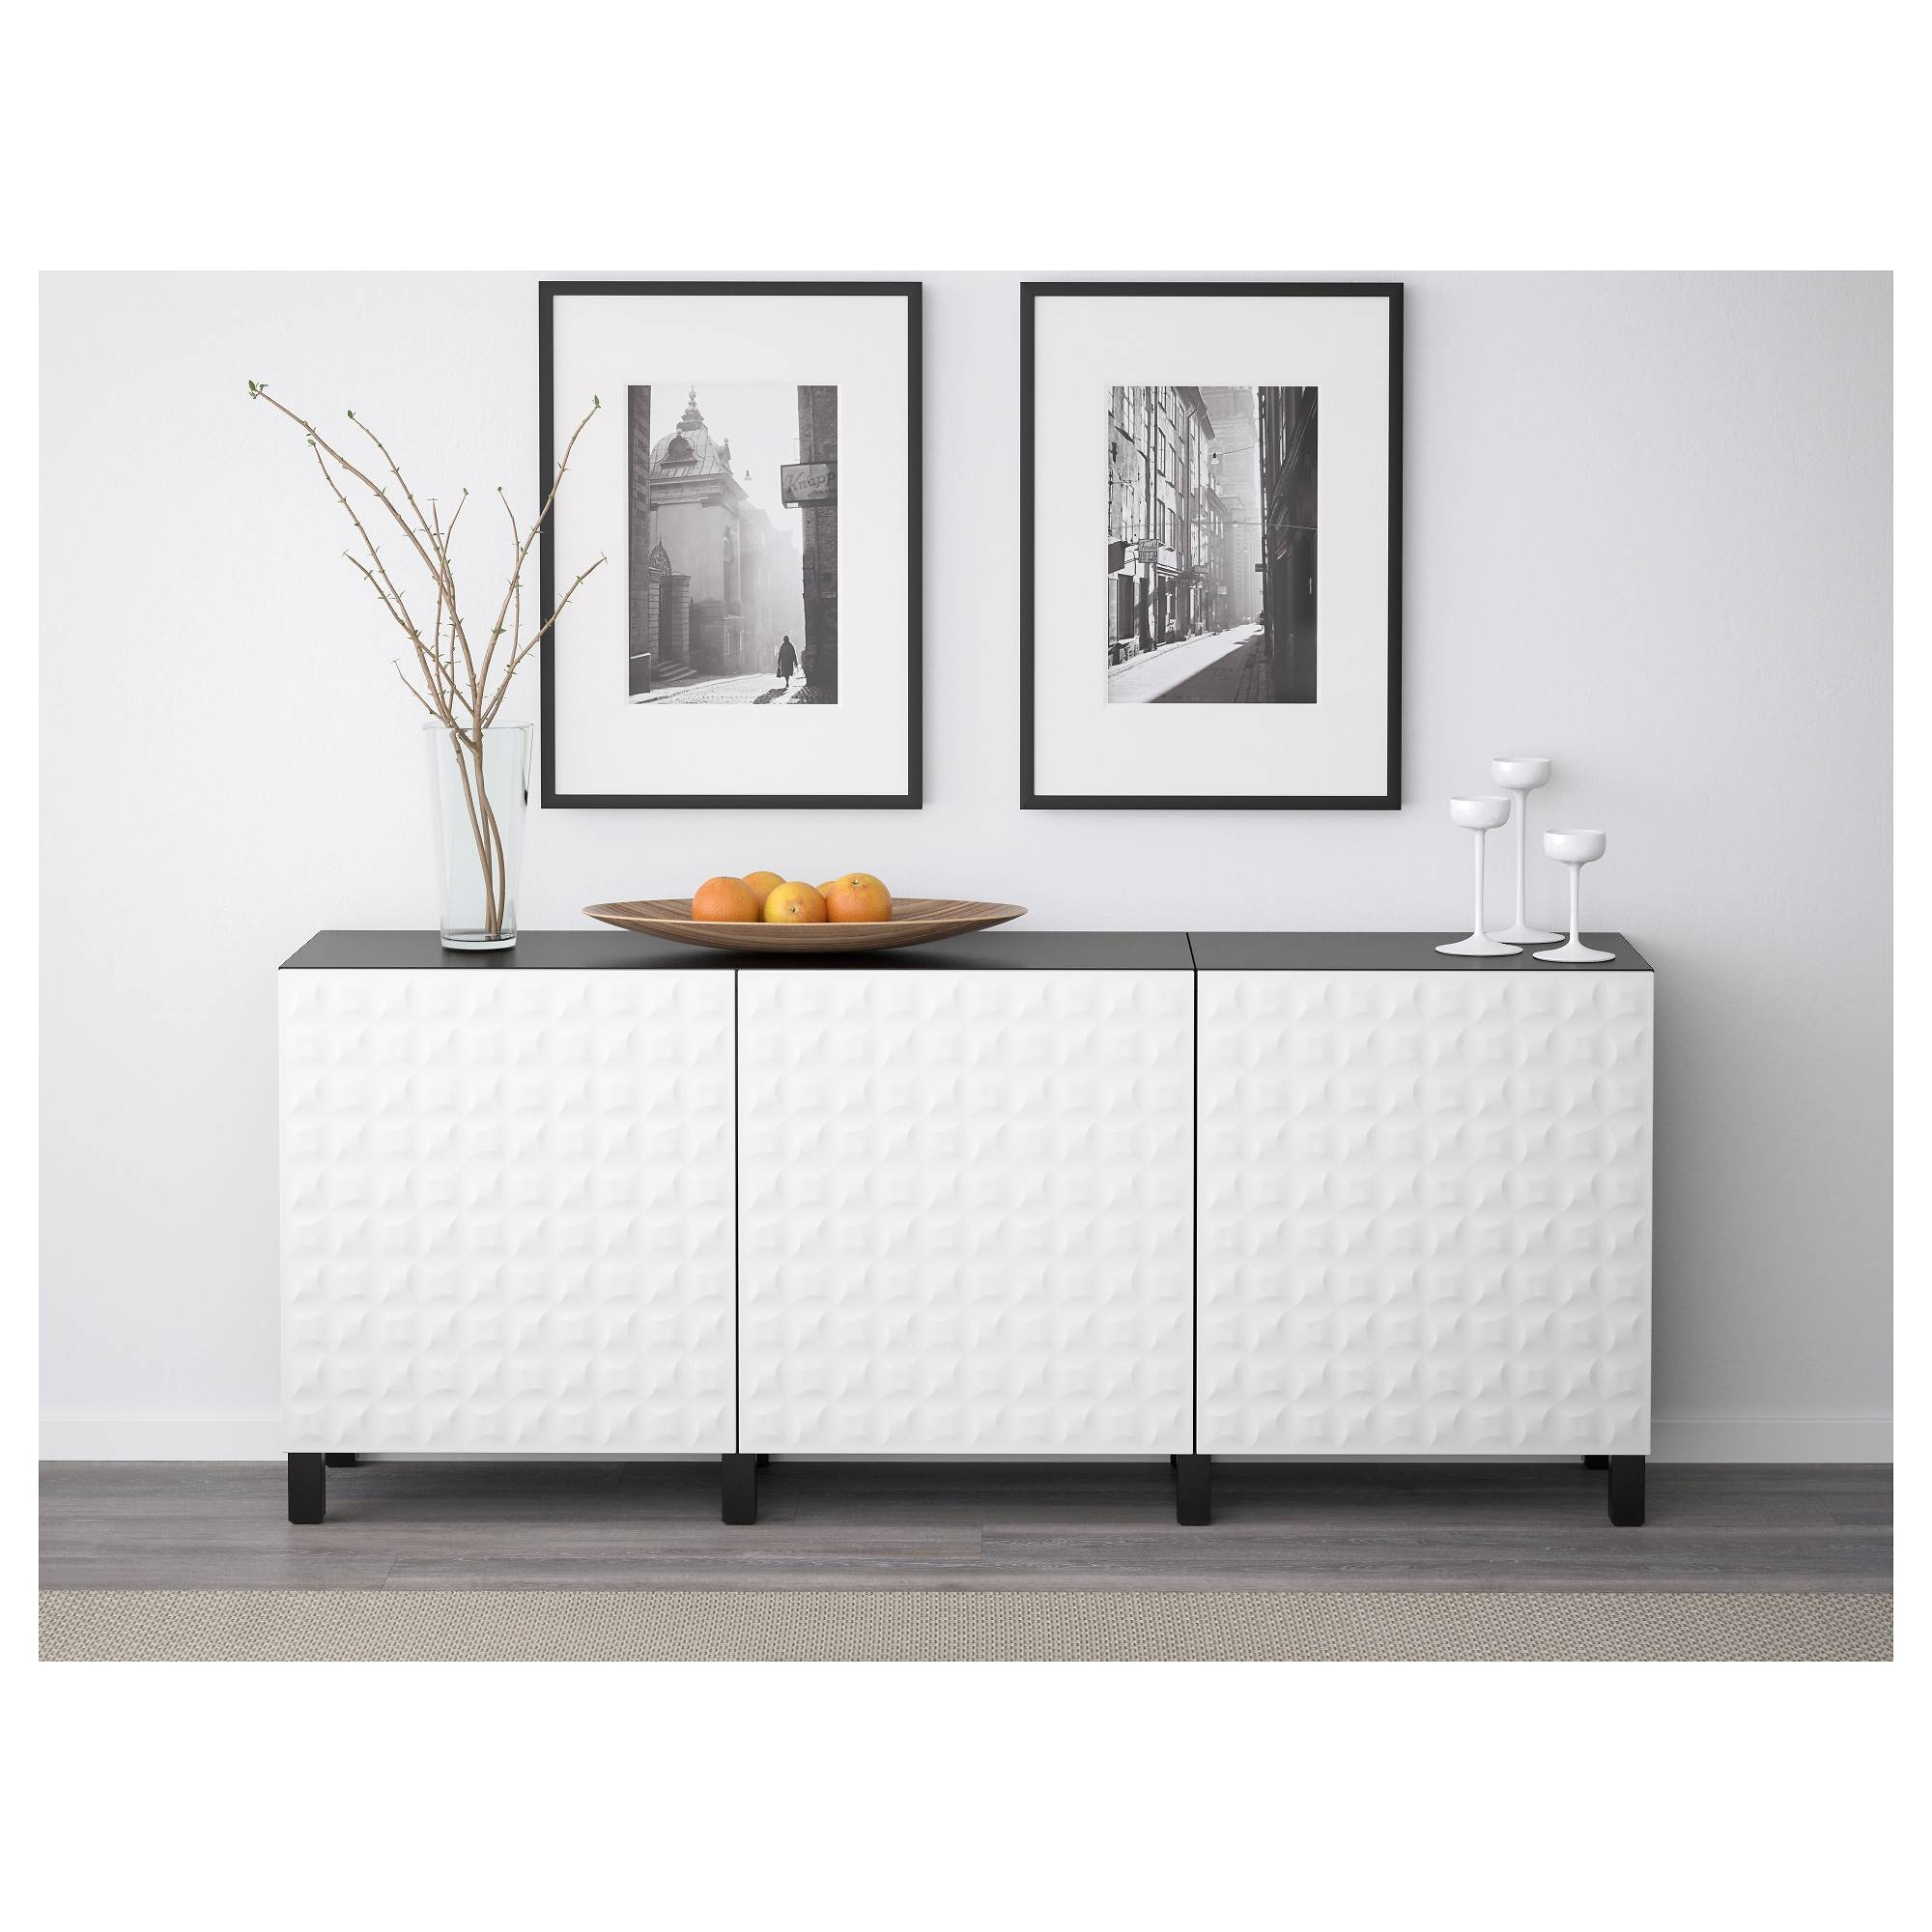 Bestå Storage Combination With Doors – White/selsviken High Gloss Throughout Most Up To Date White Gloss Ikea Sideboards (View 12 of 15)